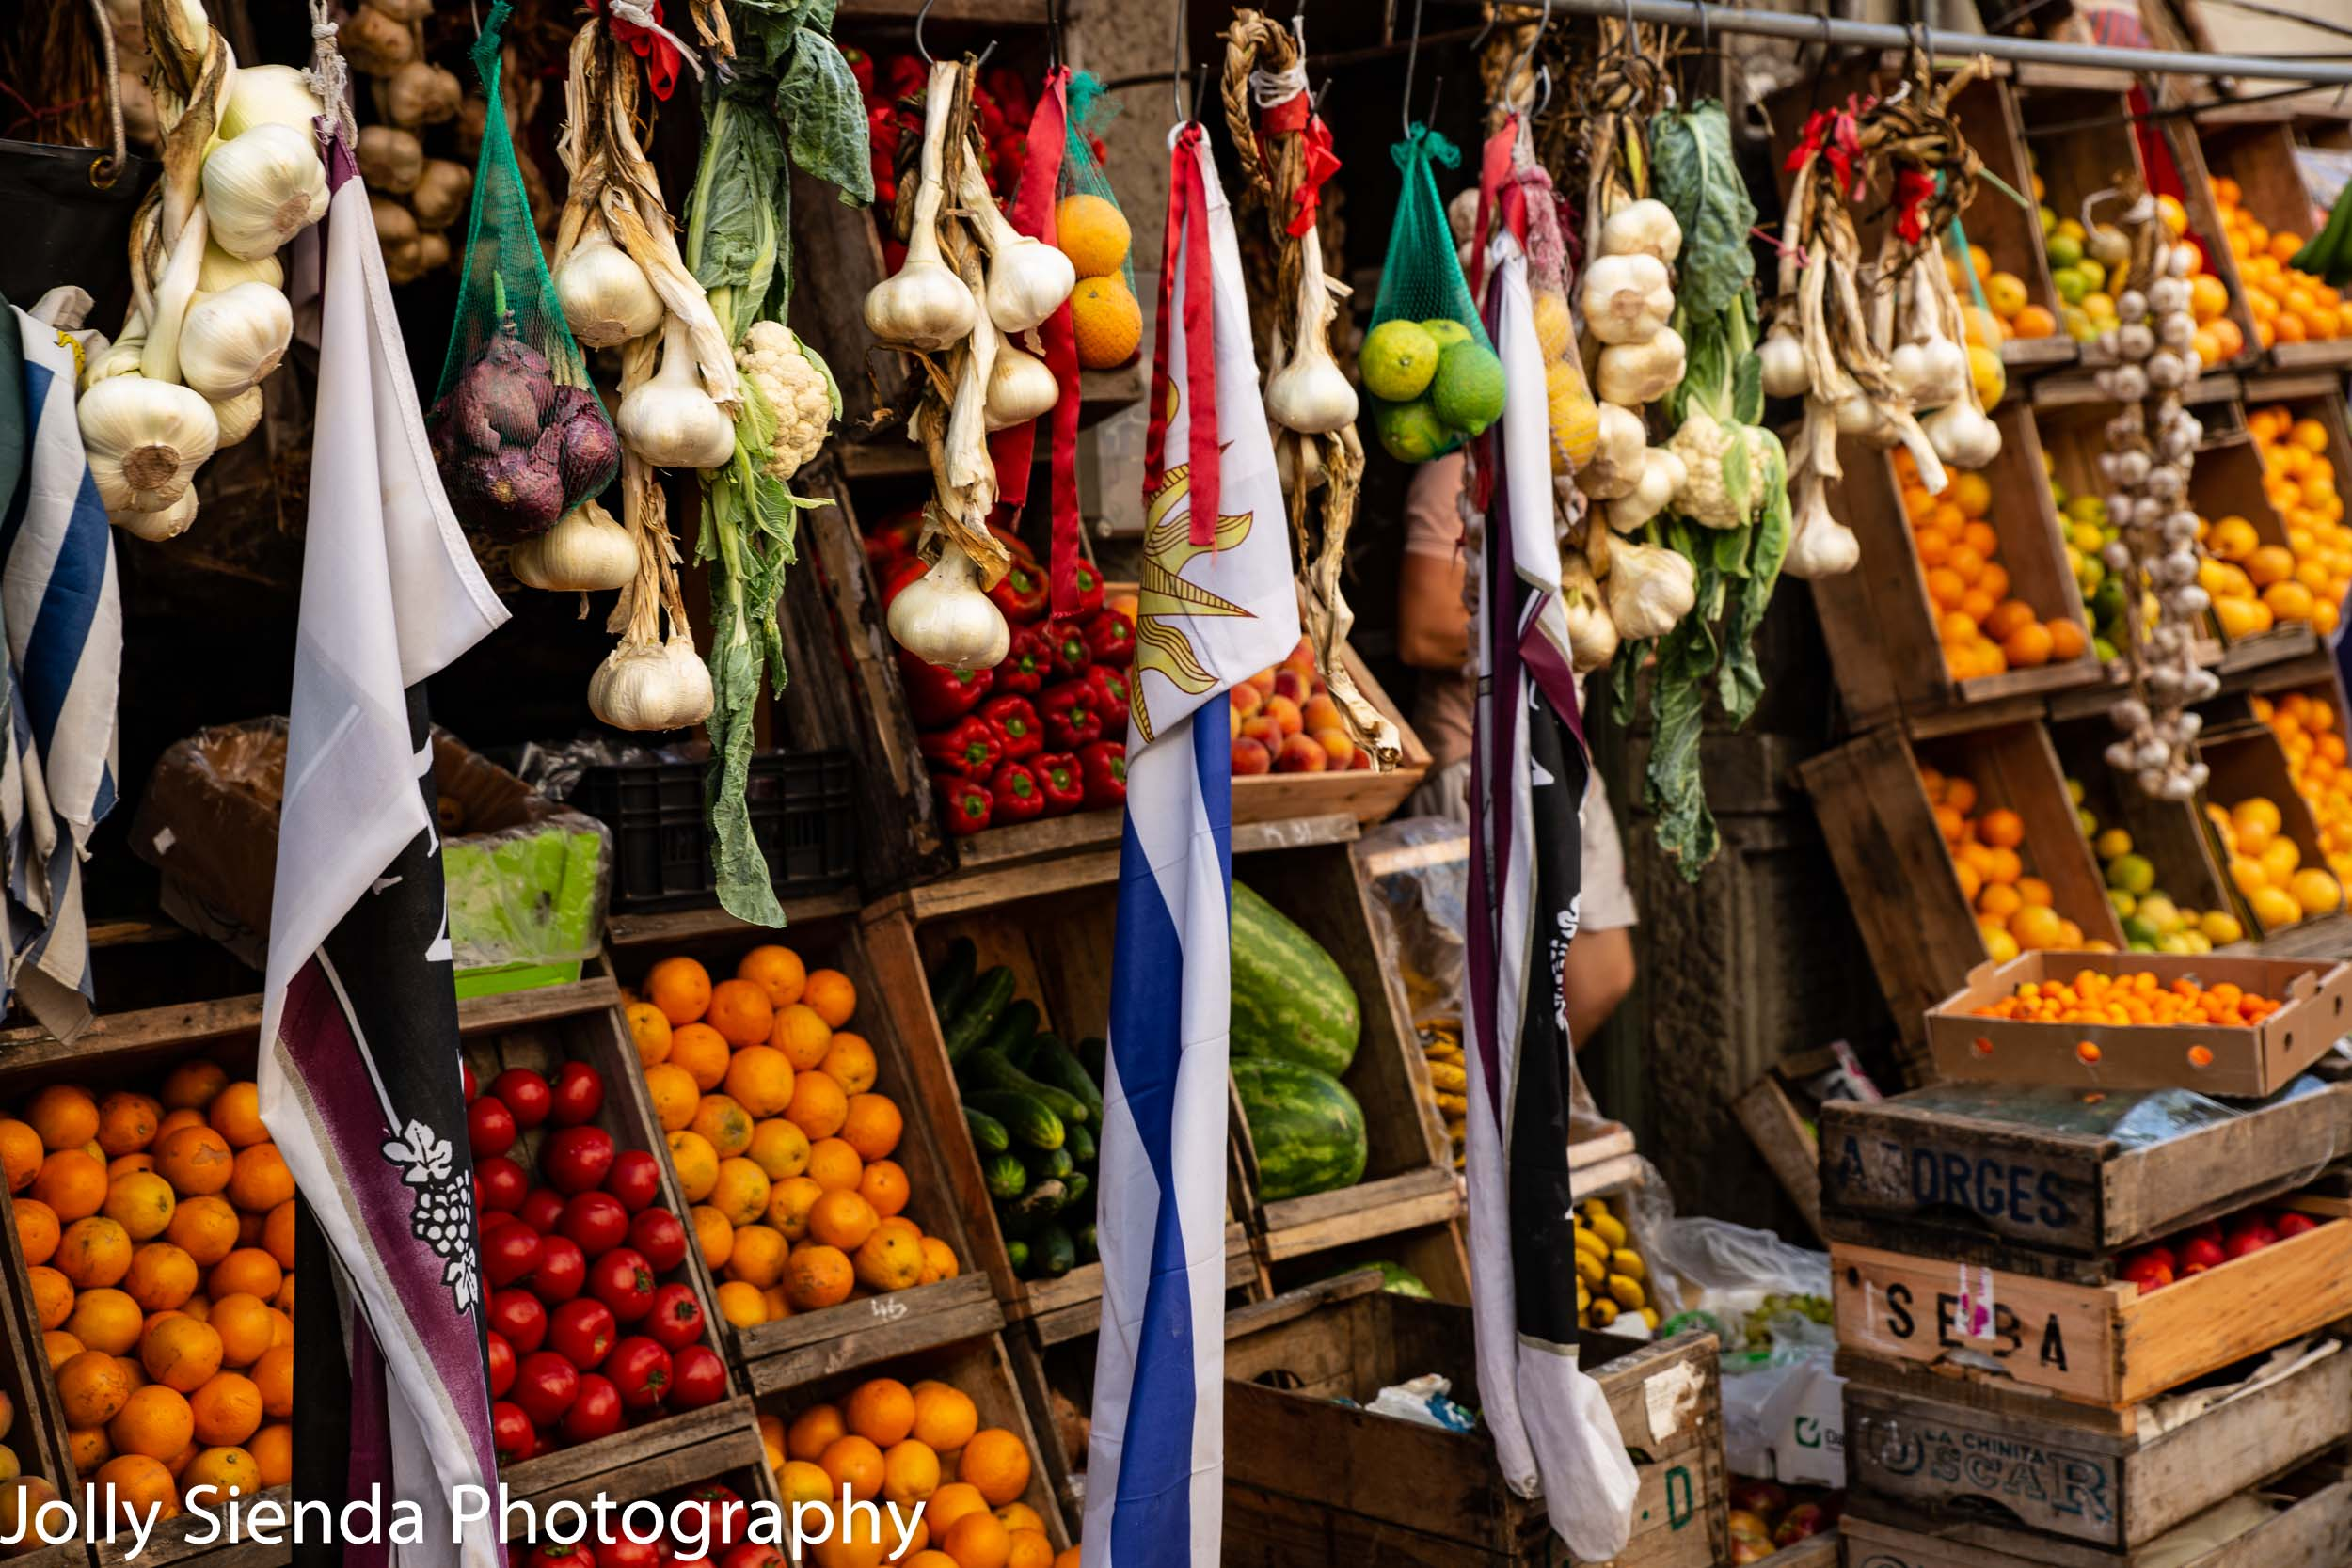 Outdoor fruit and vegetable market